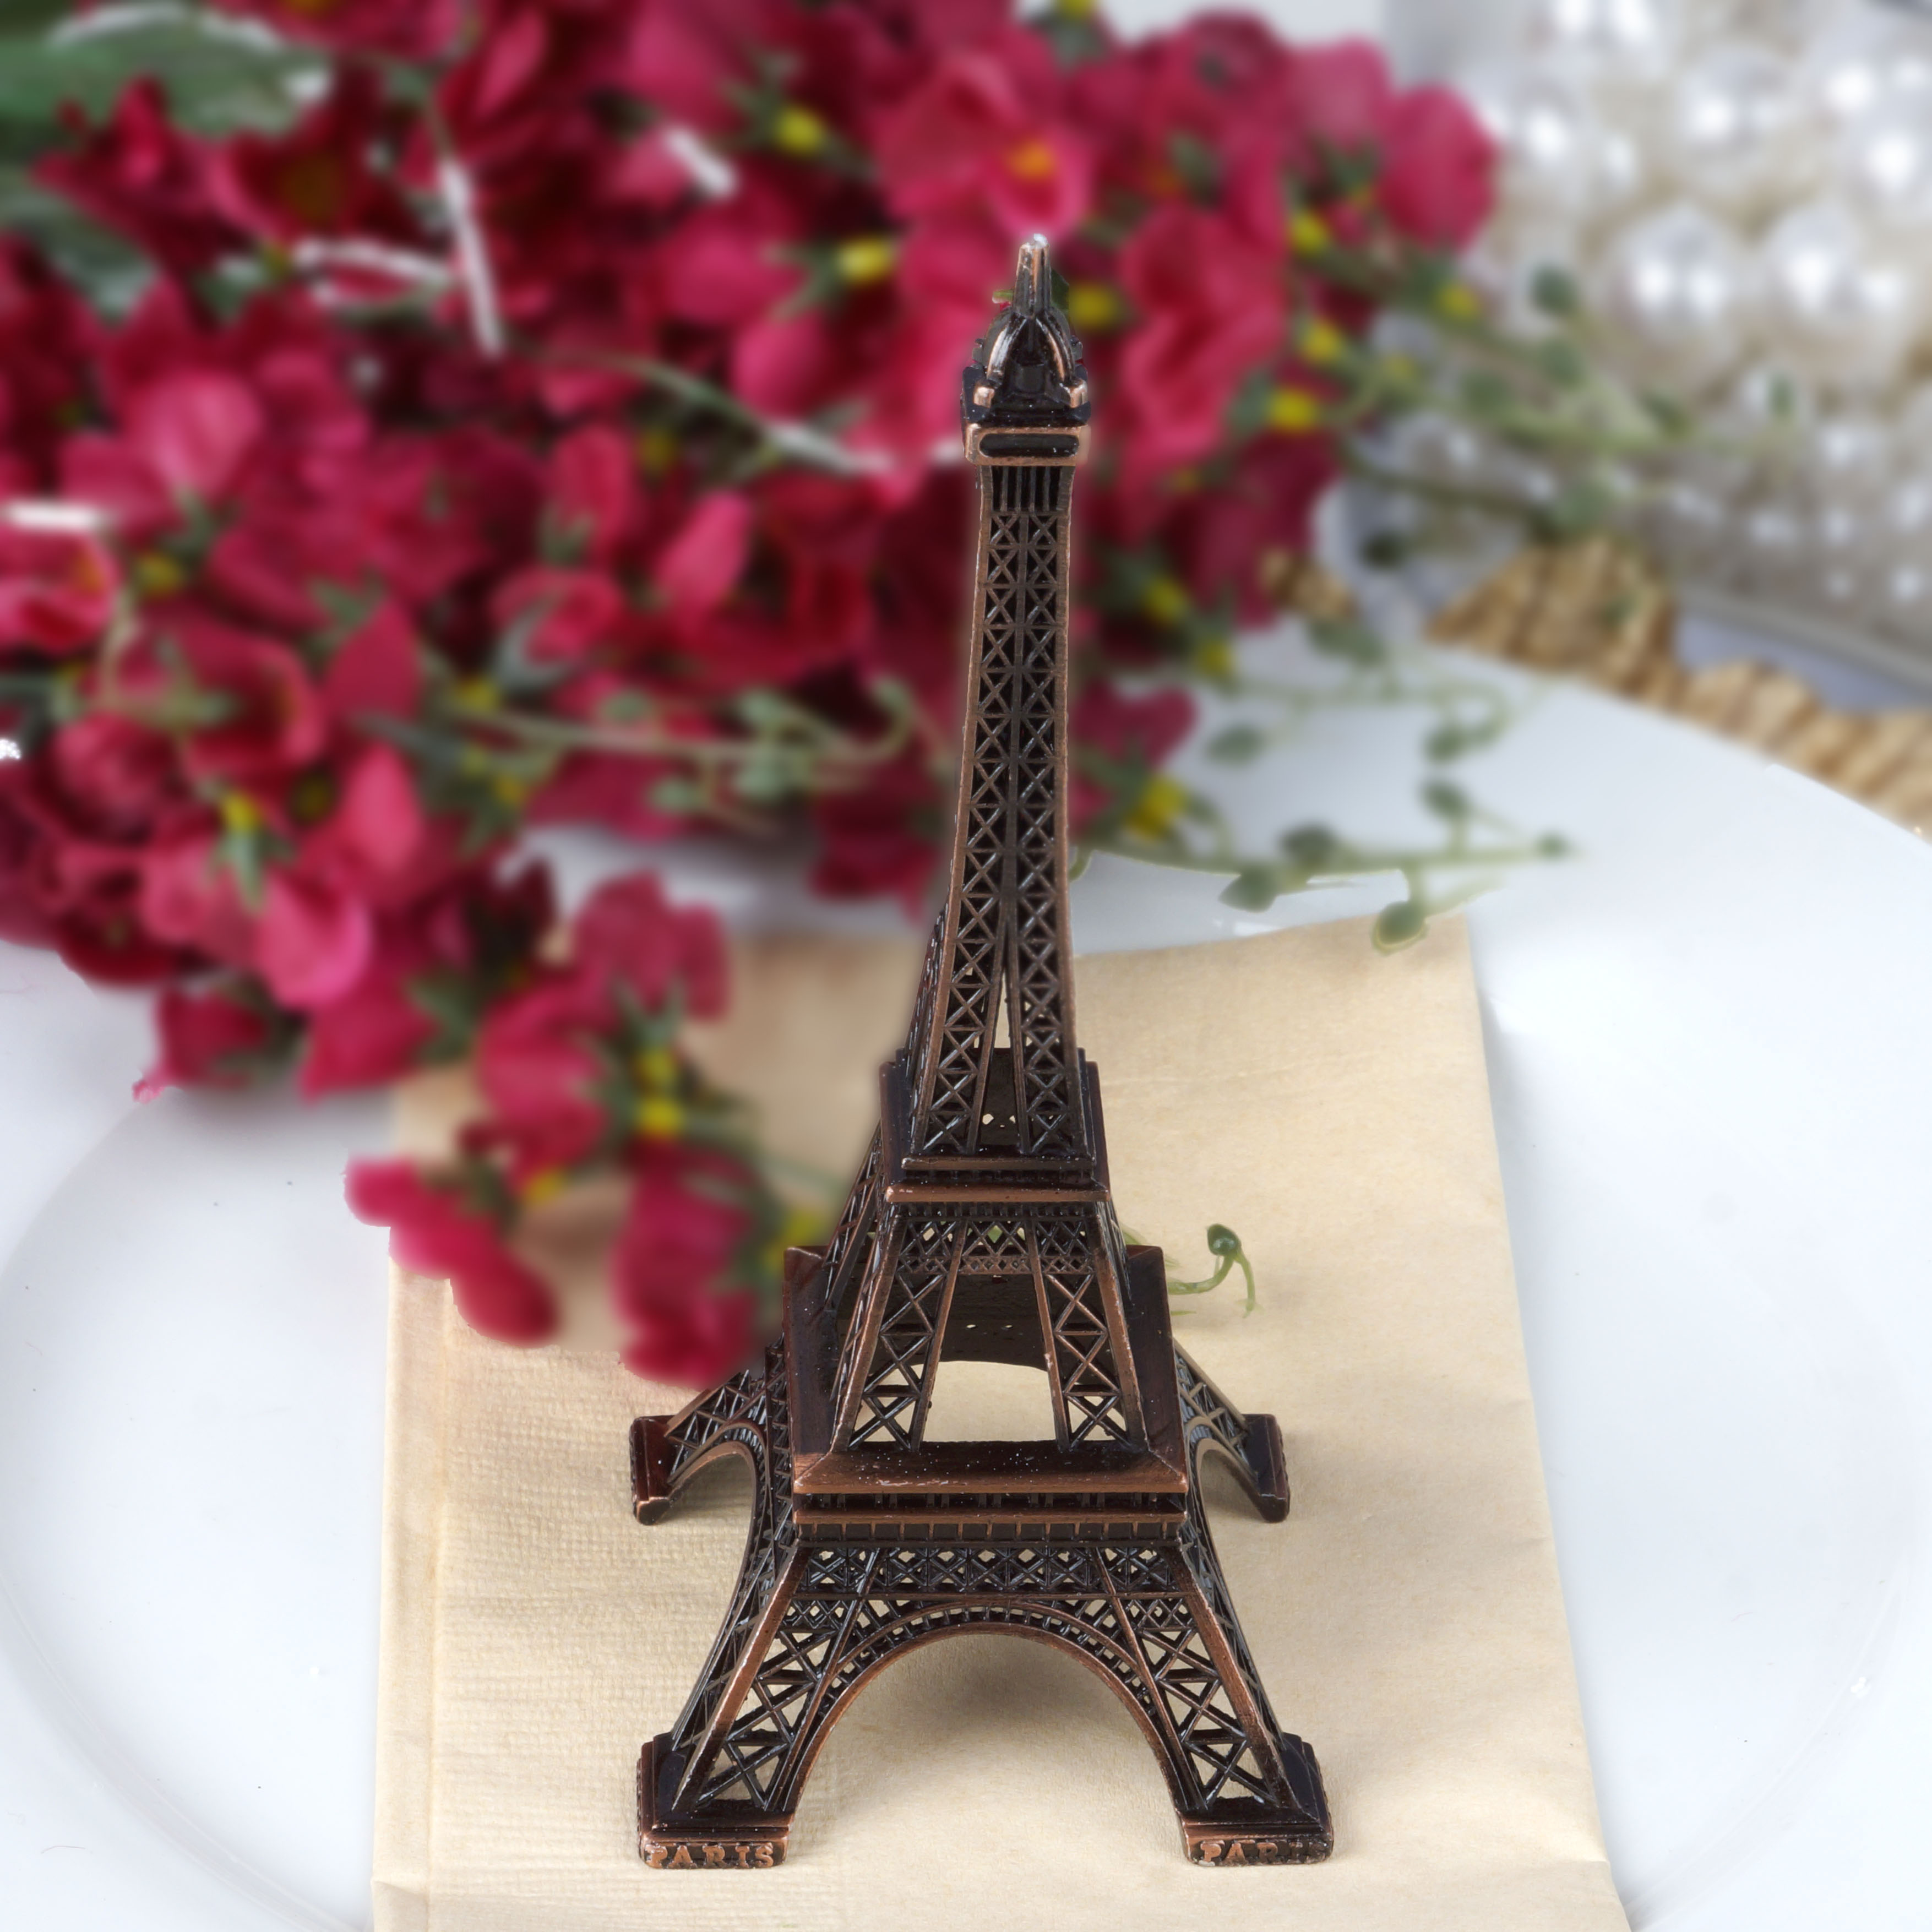 Eiffel Tower Centerpieces Diy | Eiffel Tower Centerpieces | Eiffel Tower Centerpieces for Quinceaneras